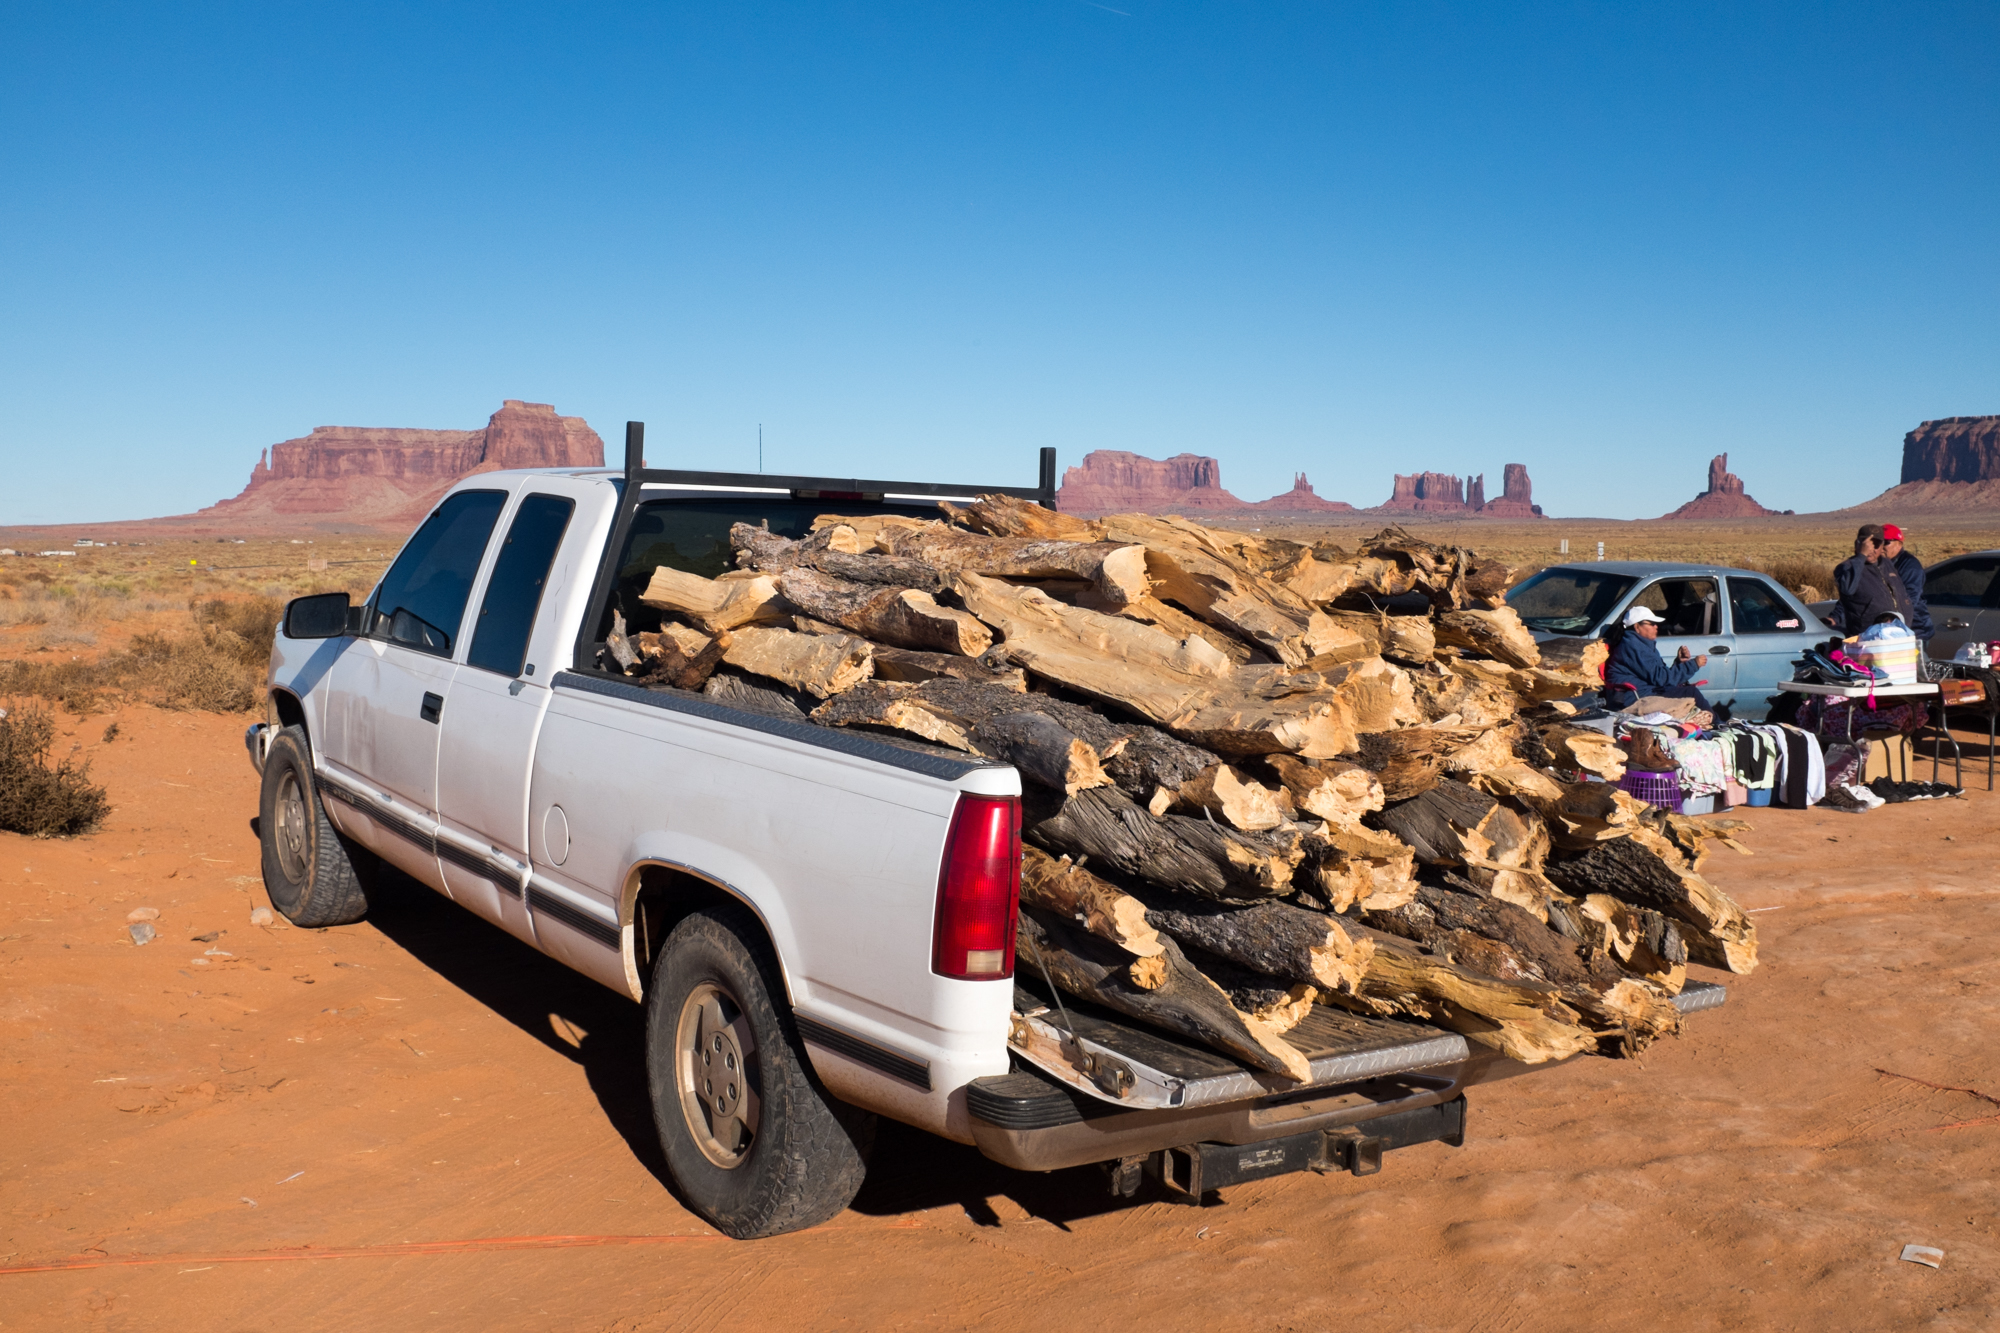 Firewood in Monument Valley, collected on Cedar Mesa to heat Navajo homes.